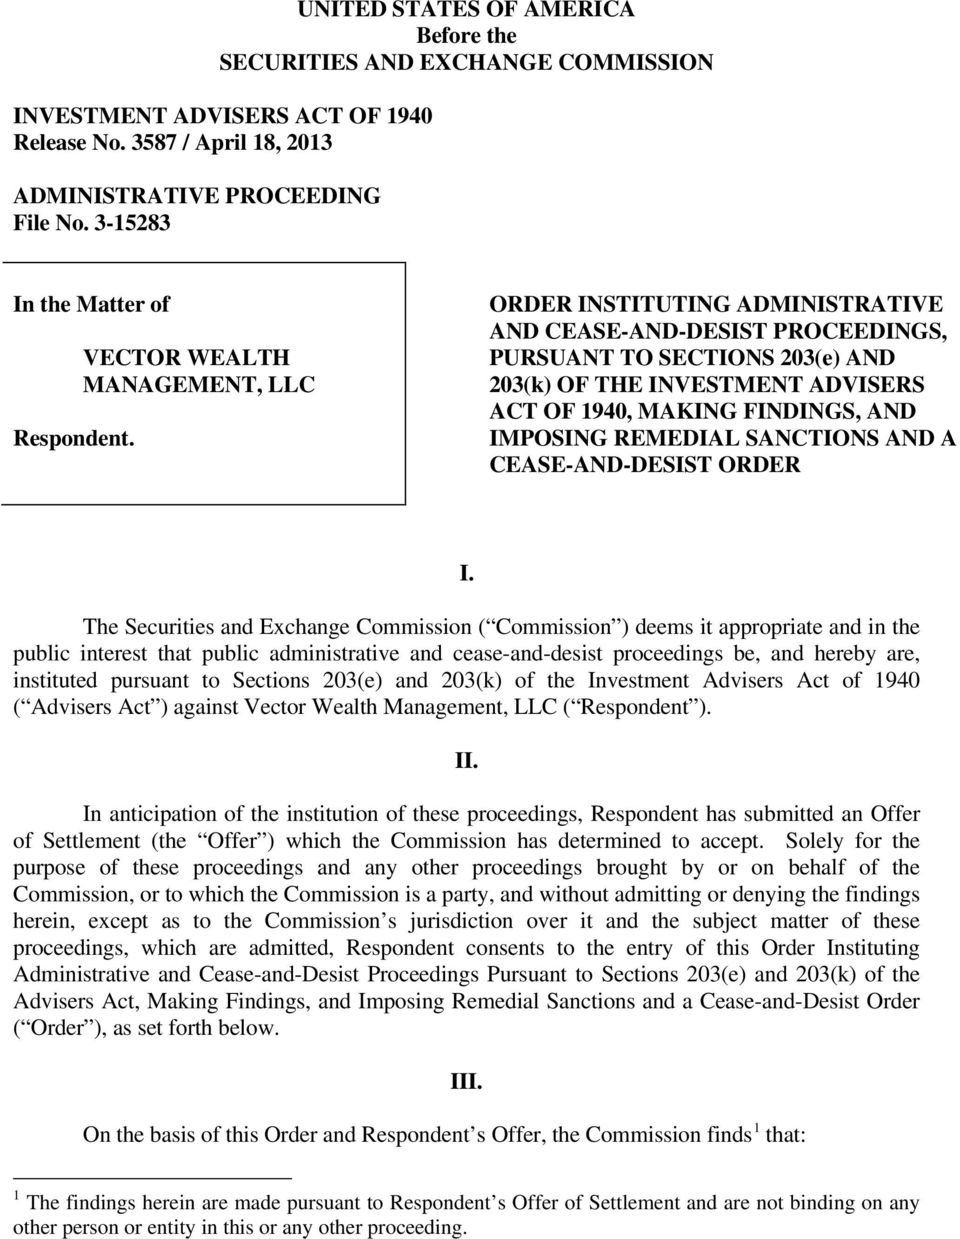 VECTOR WEALTH MANAGEMENT, LLC ORDER INSTITUTING ADMINISTRATIVE AND CEASE-AND-DESIST PROCEEDINGS, PURSUANT TO SECTIONS 203(e) AND 203(k) OF THE INVESTMENT ADVISERS ACT OF 1940, MAKING FINDINGS, AND